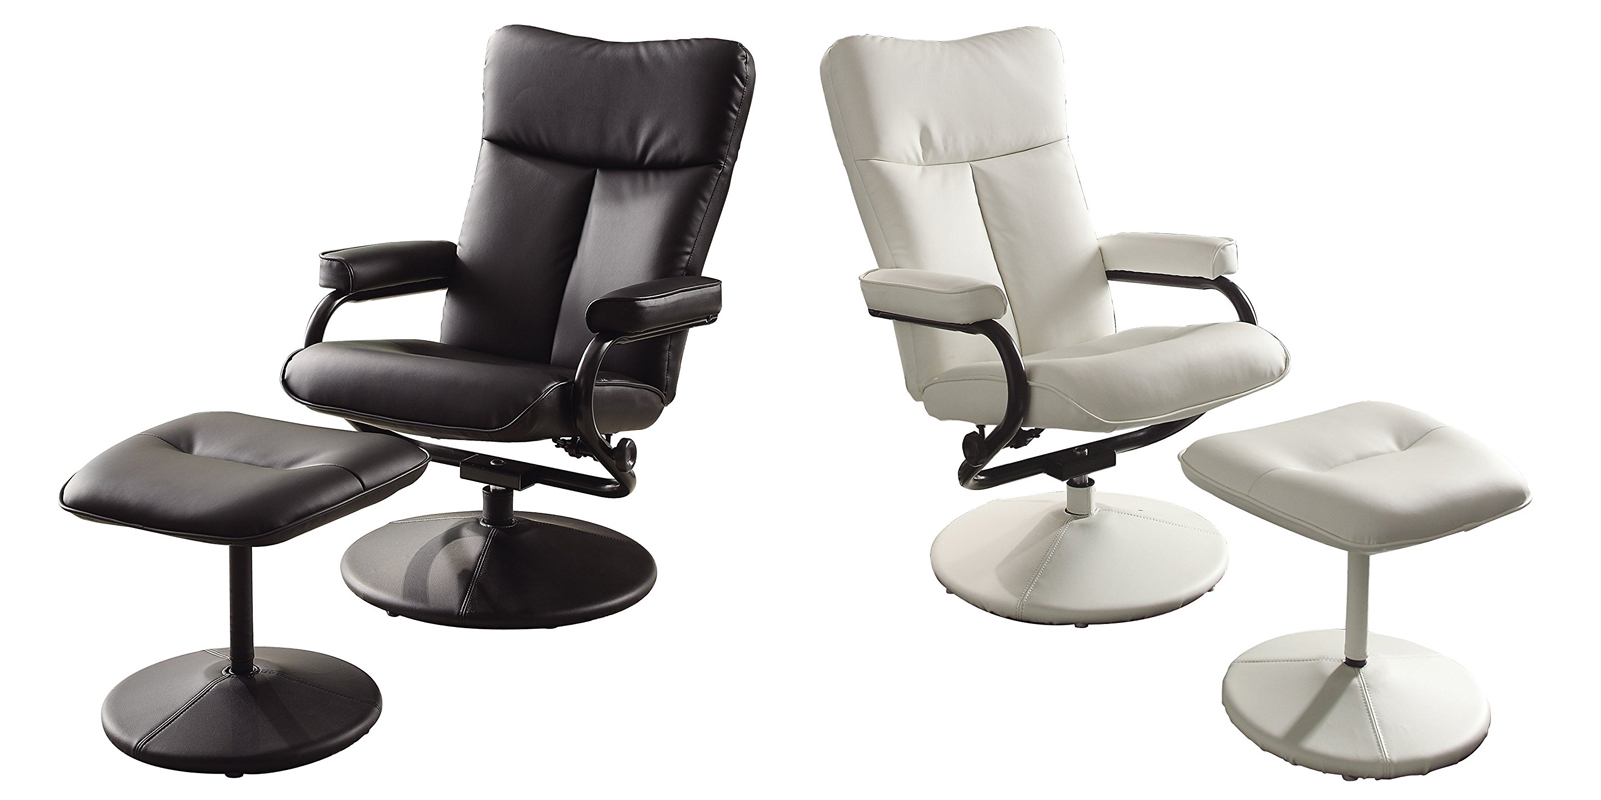 Homelegance Swivel Reclining Chair With Ottoman Gliders